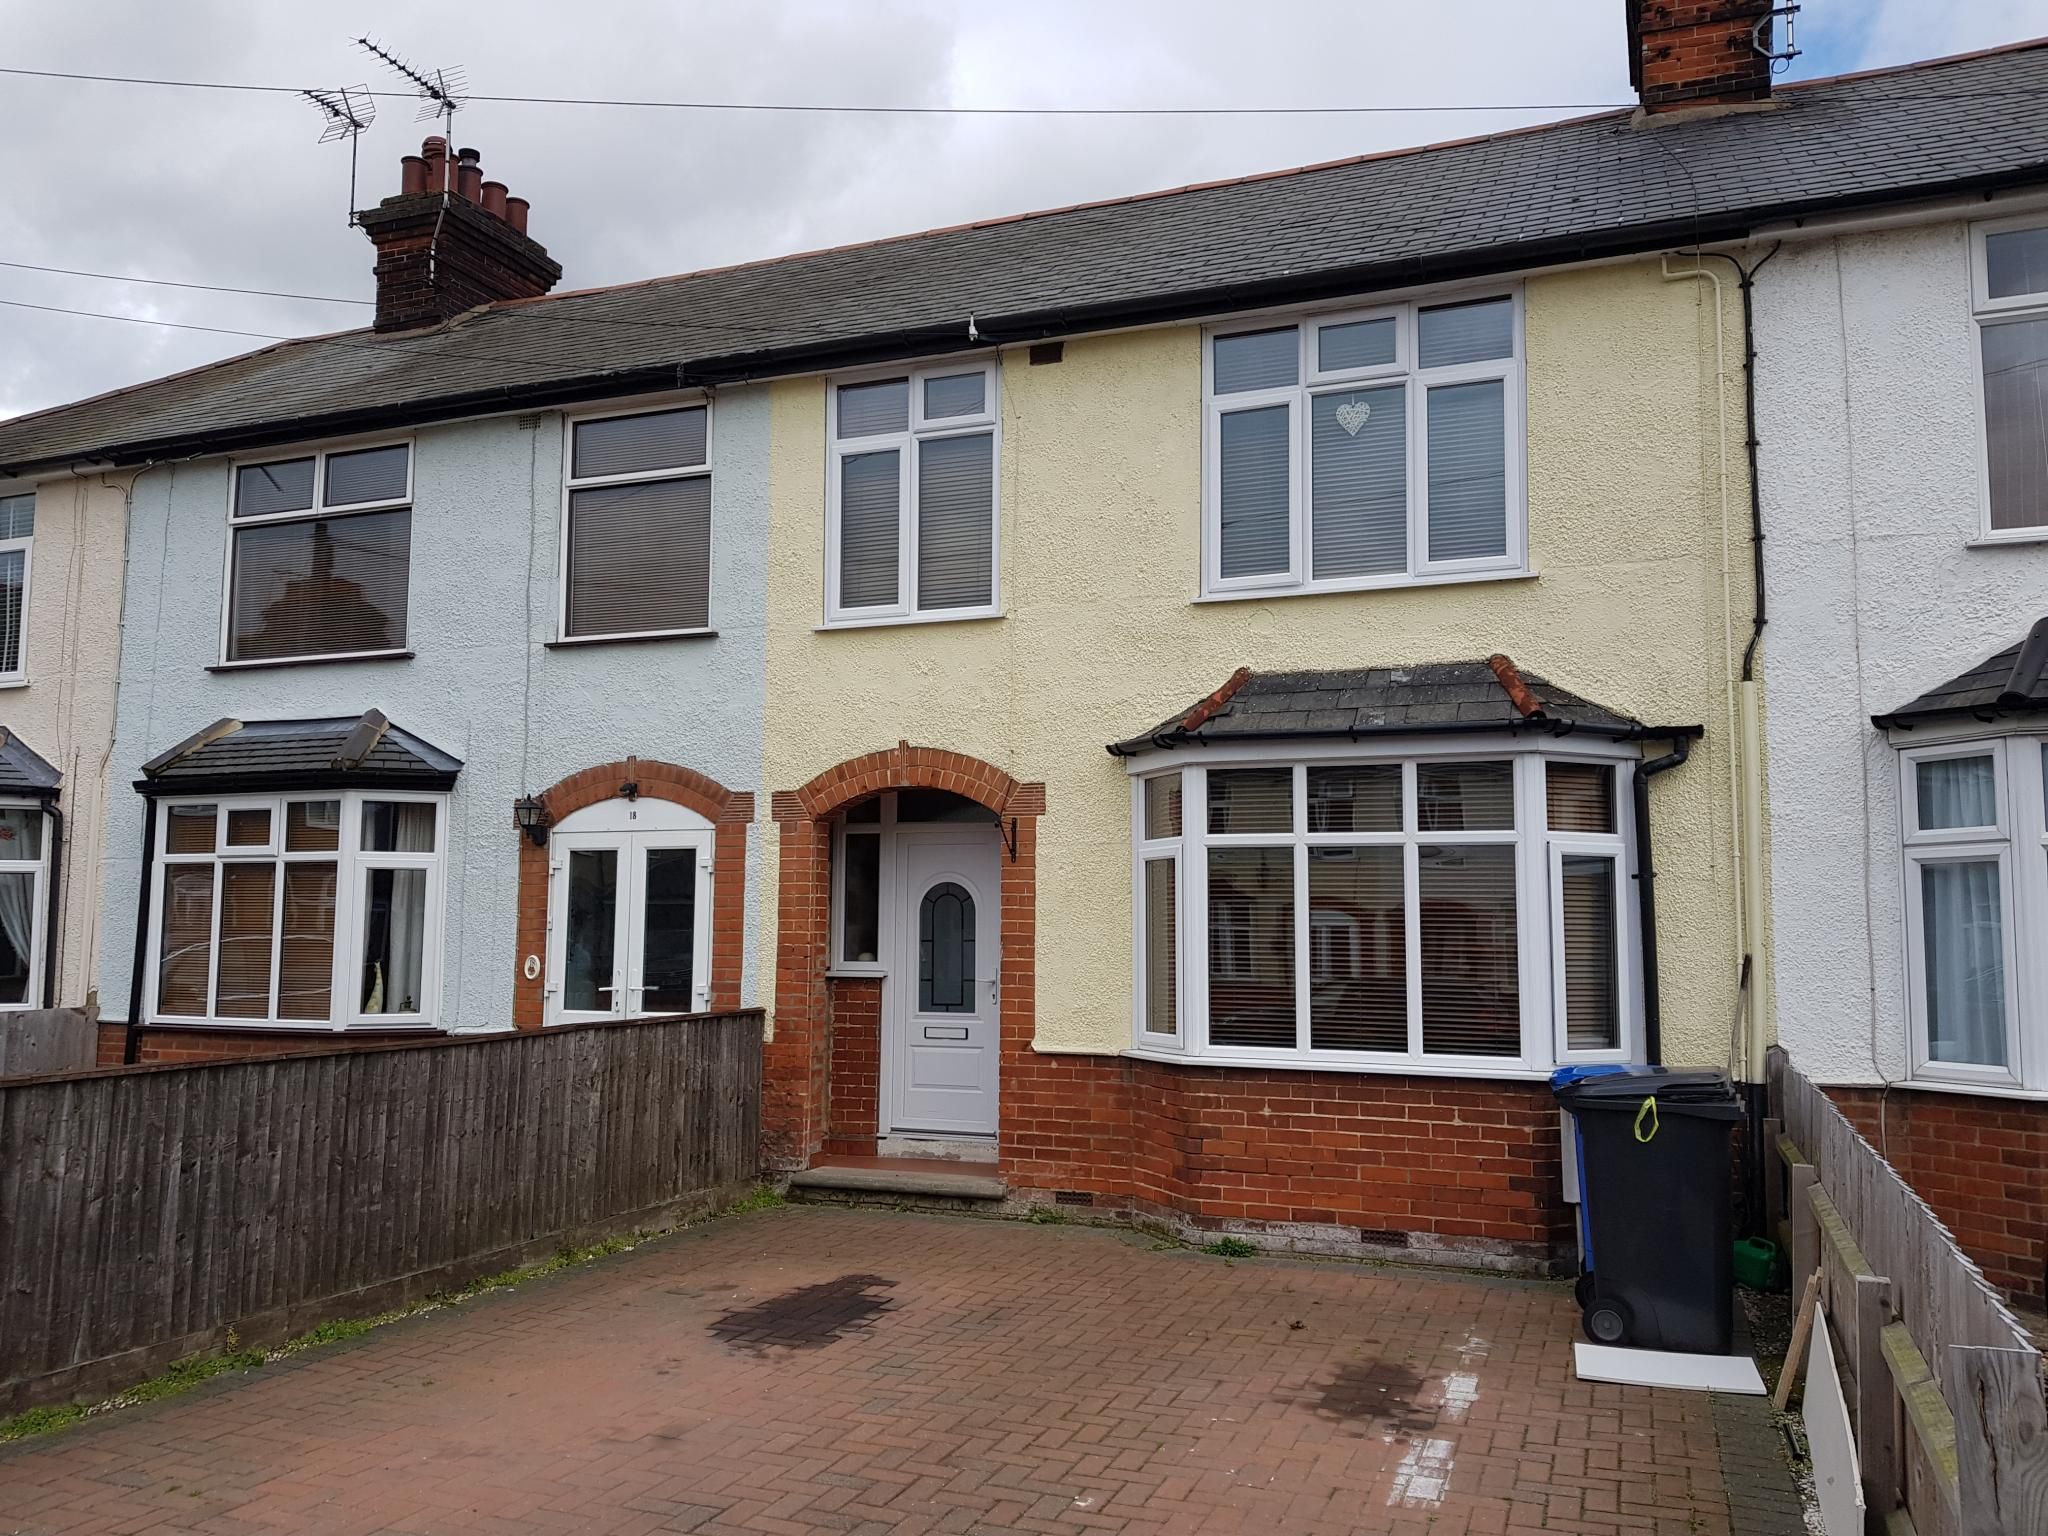 3 bedroom mid terraced house SSTC in Ipswich - 1